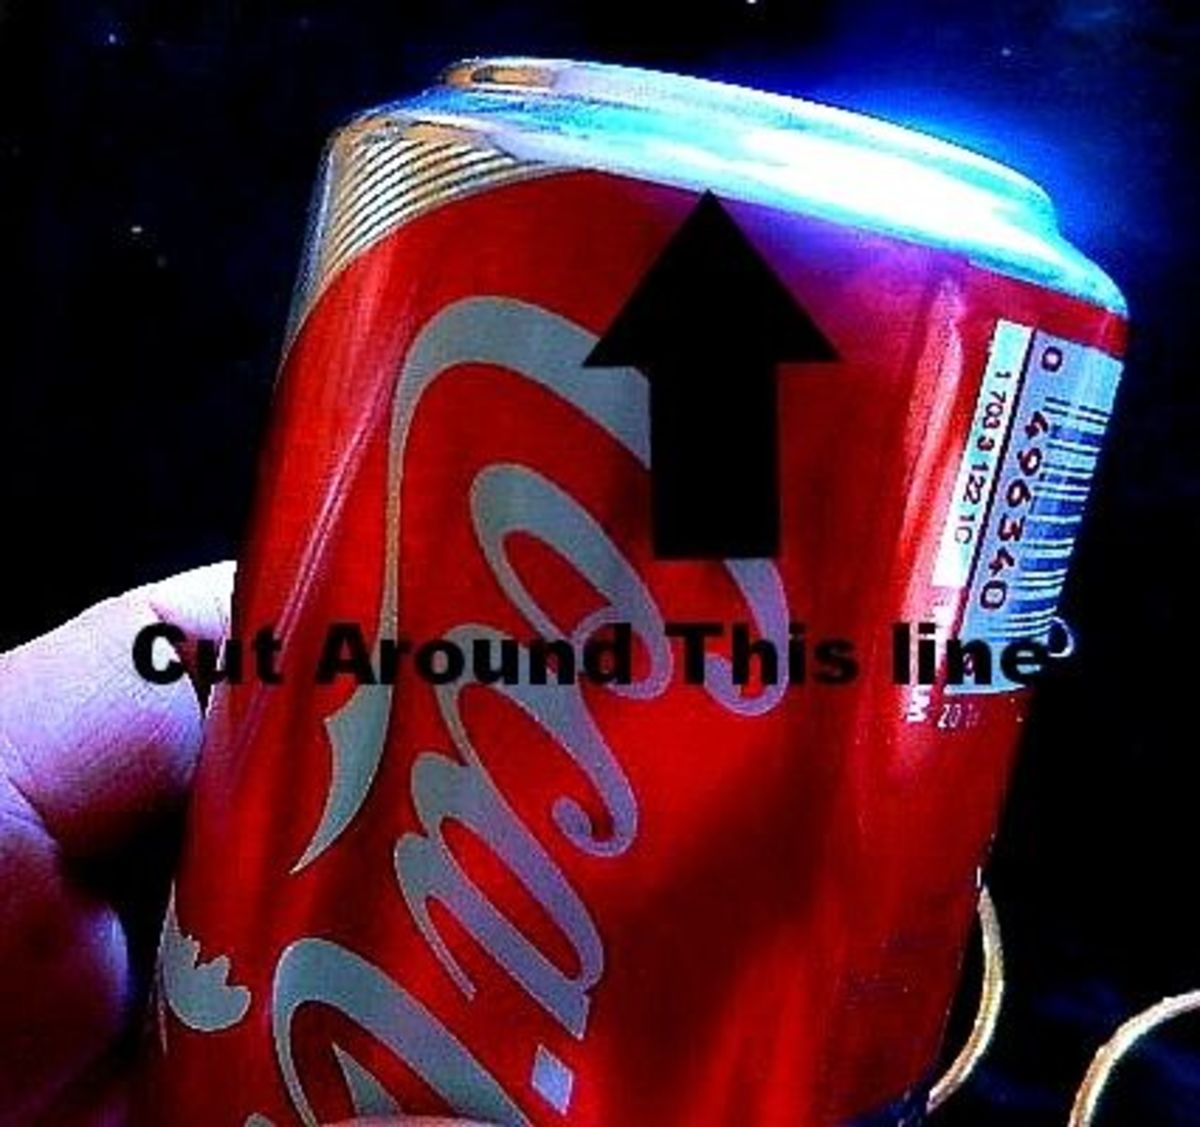 Cut the bottoms off of both of your soda cans.